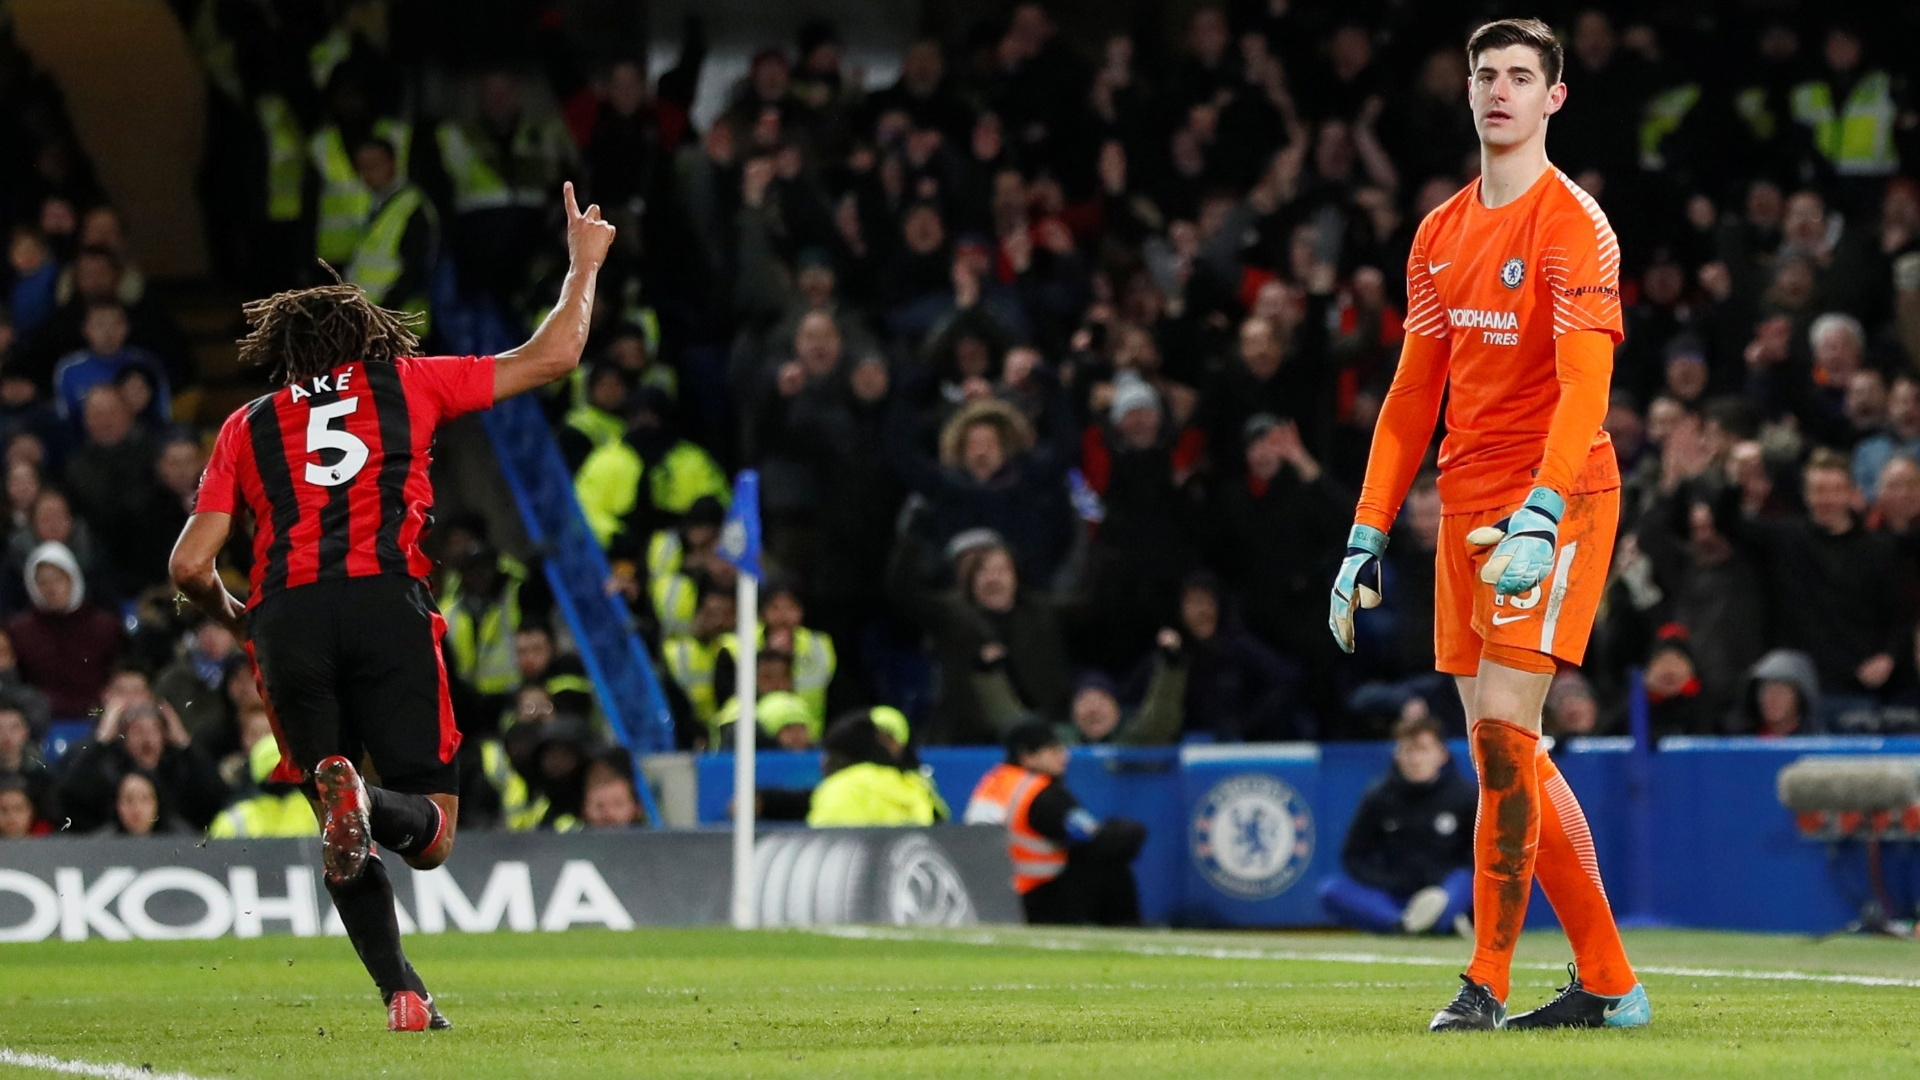 Com Courtois desolado, Ake comemora o terceiro gol do Bournemouth sobre o Chelsea